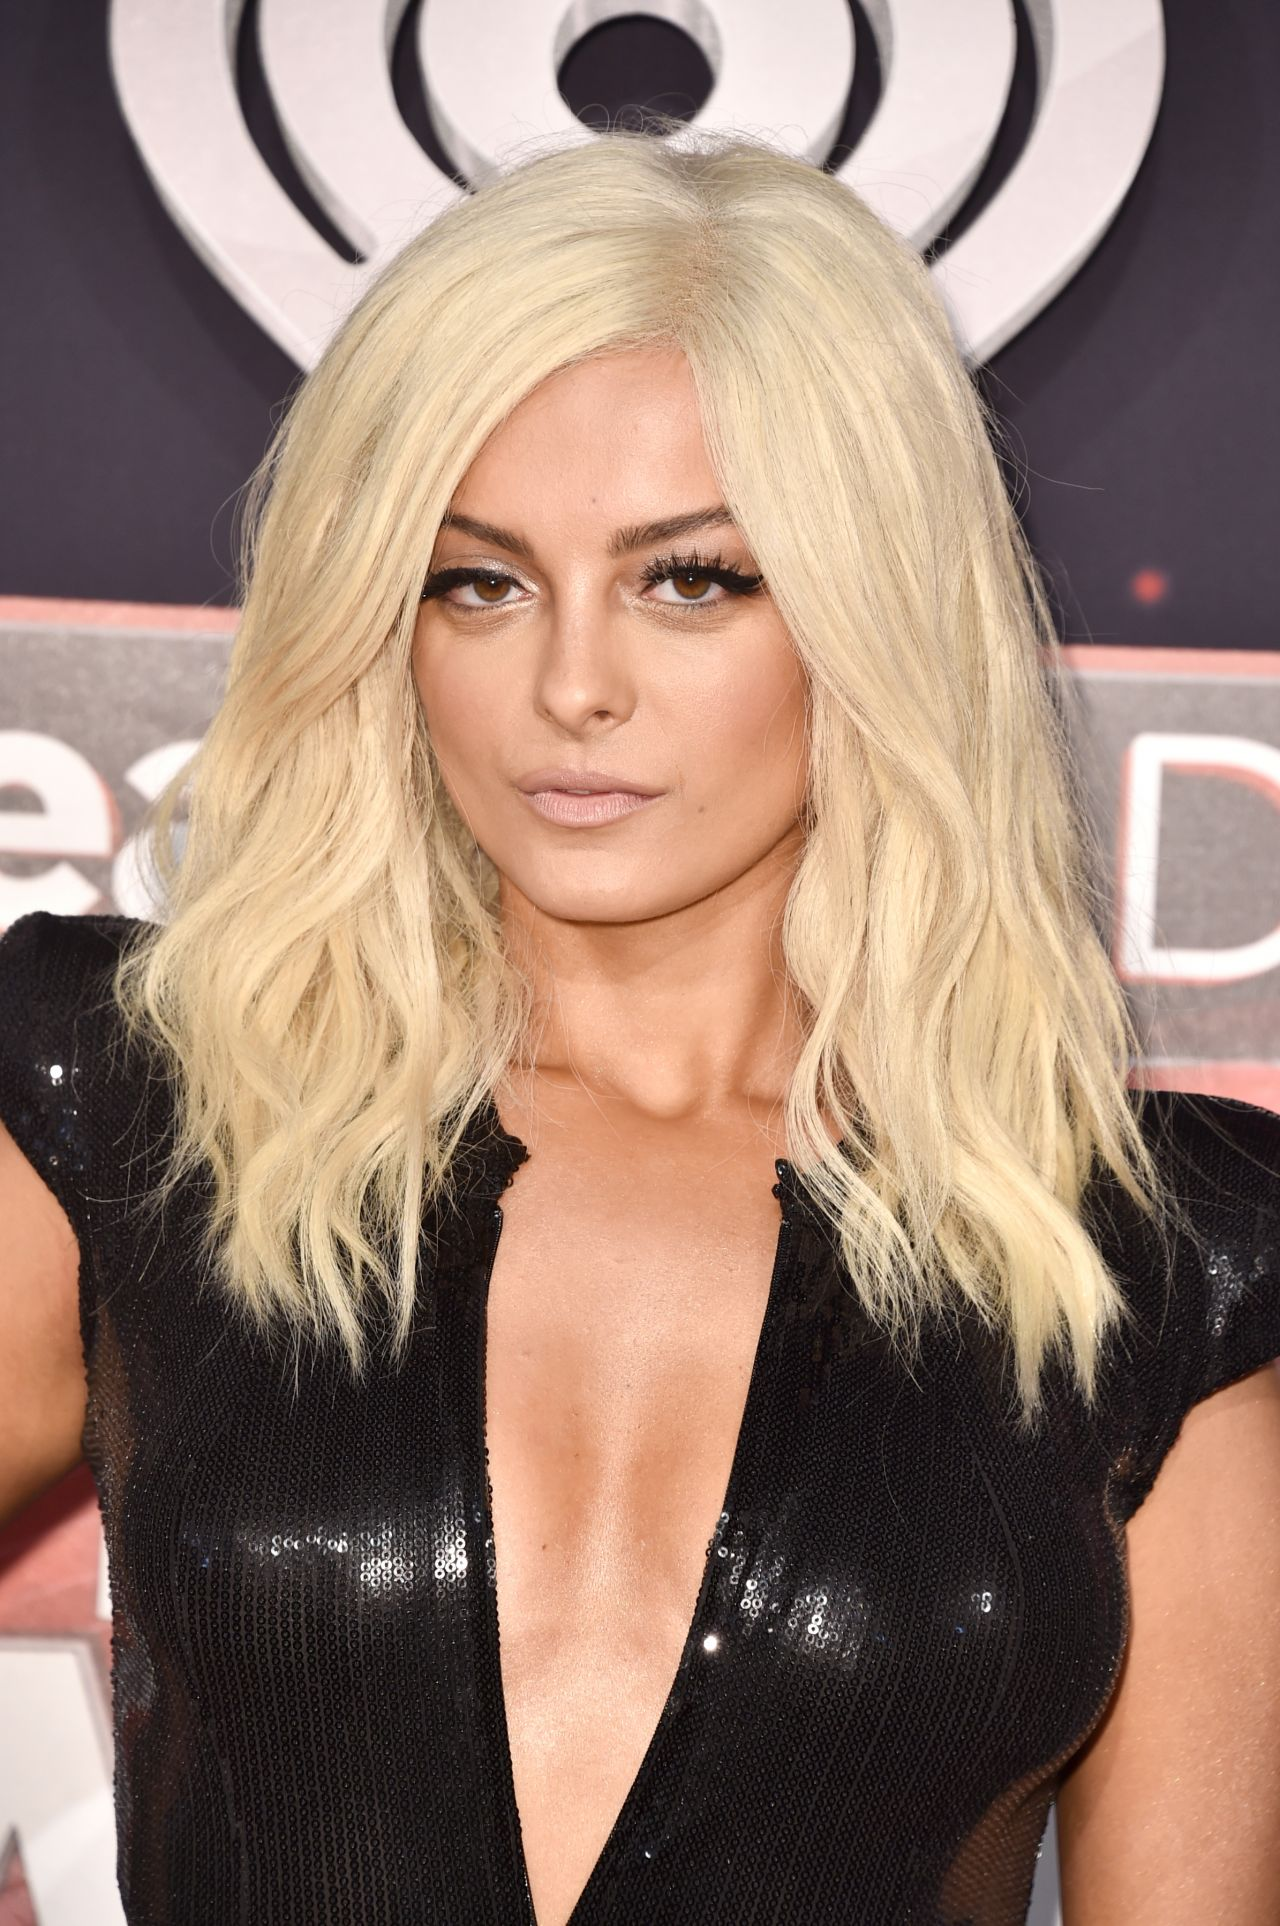 Bebe Rexha At Iheartradio Music Awards In Los Angeles A 3